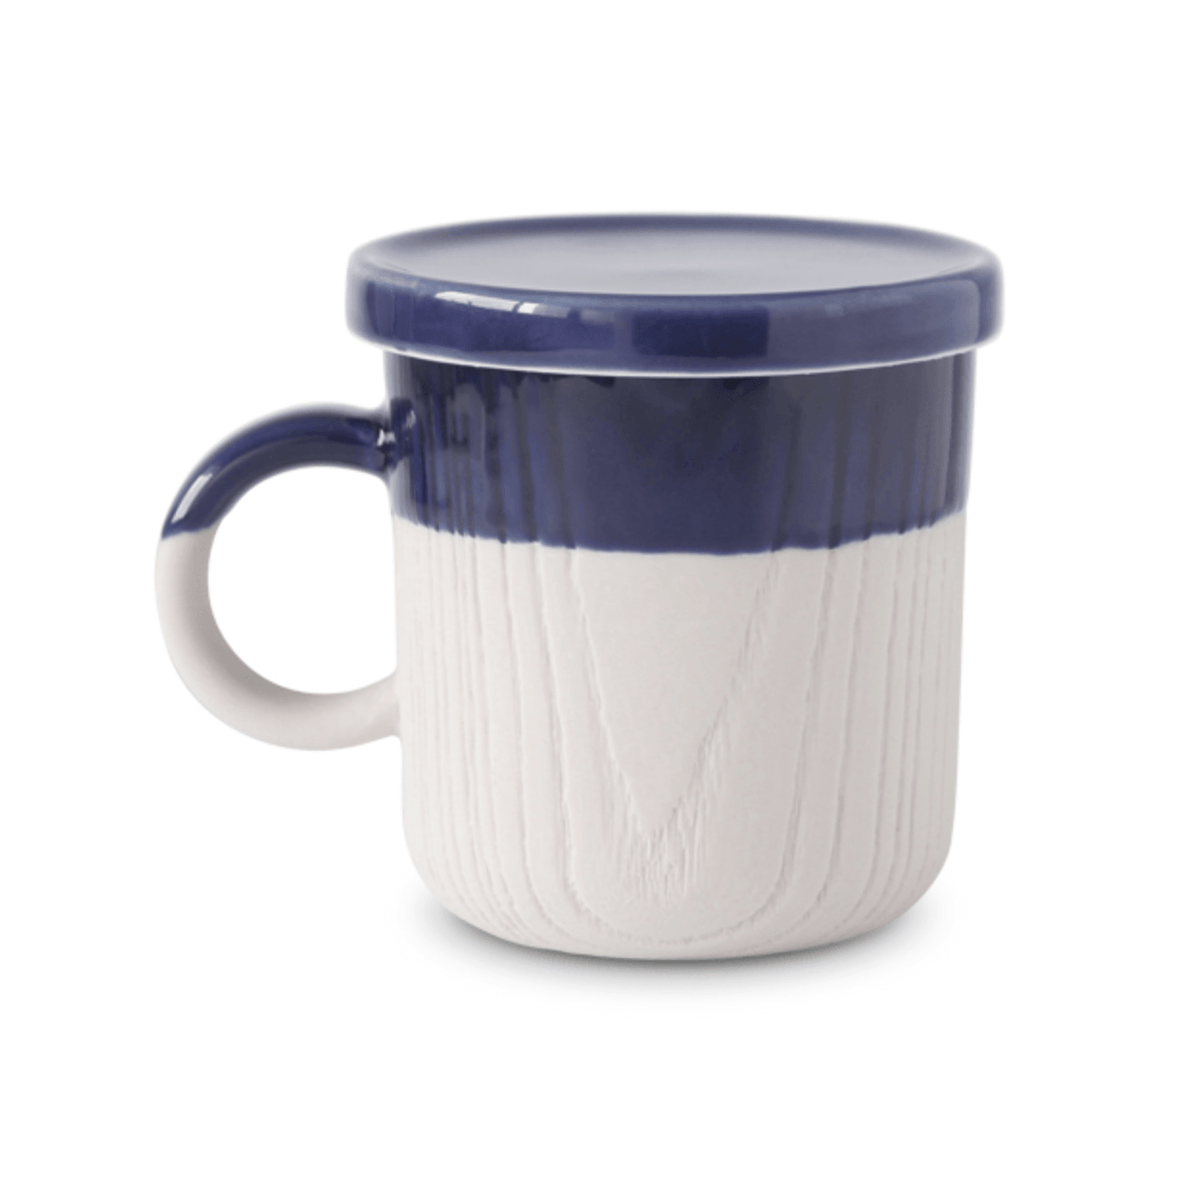 MU Mug - Seaside Blue